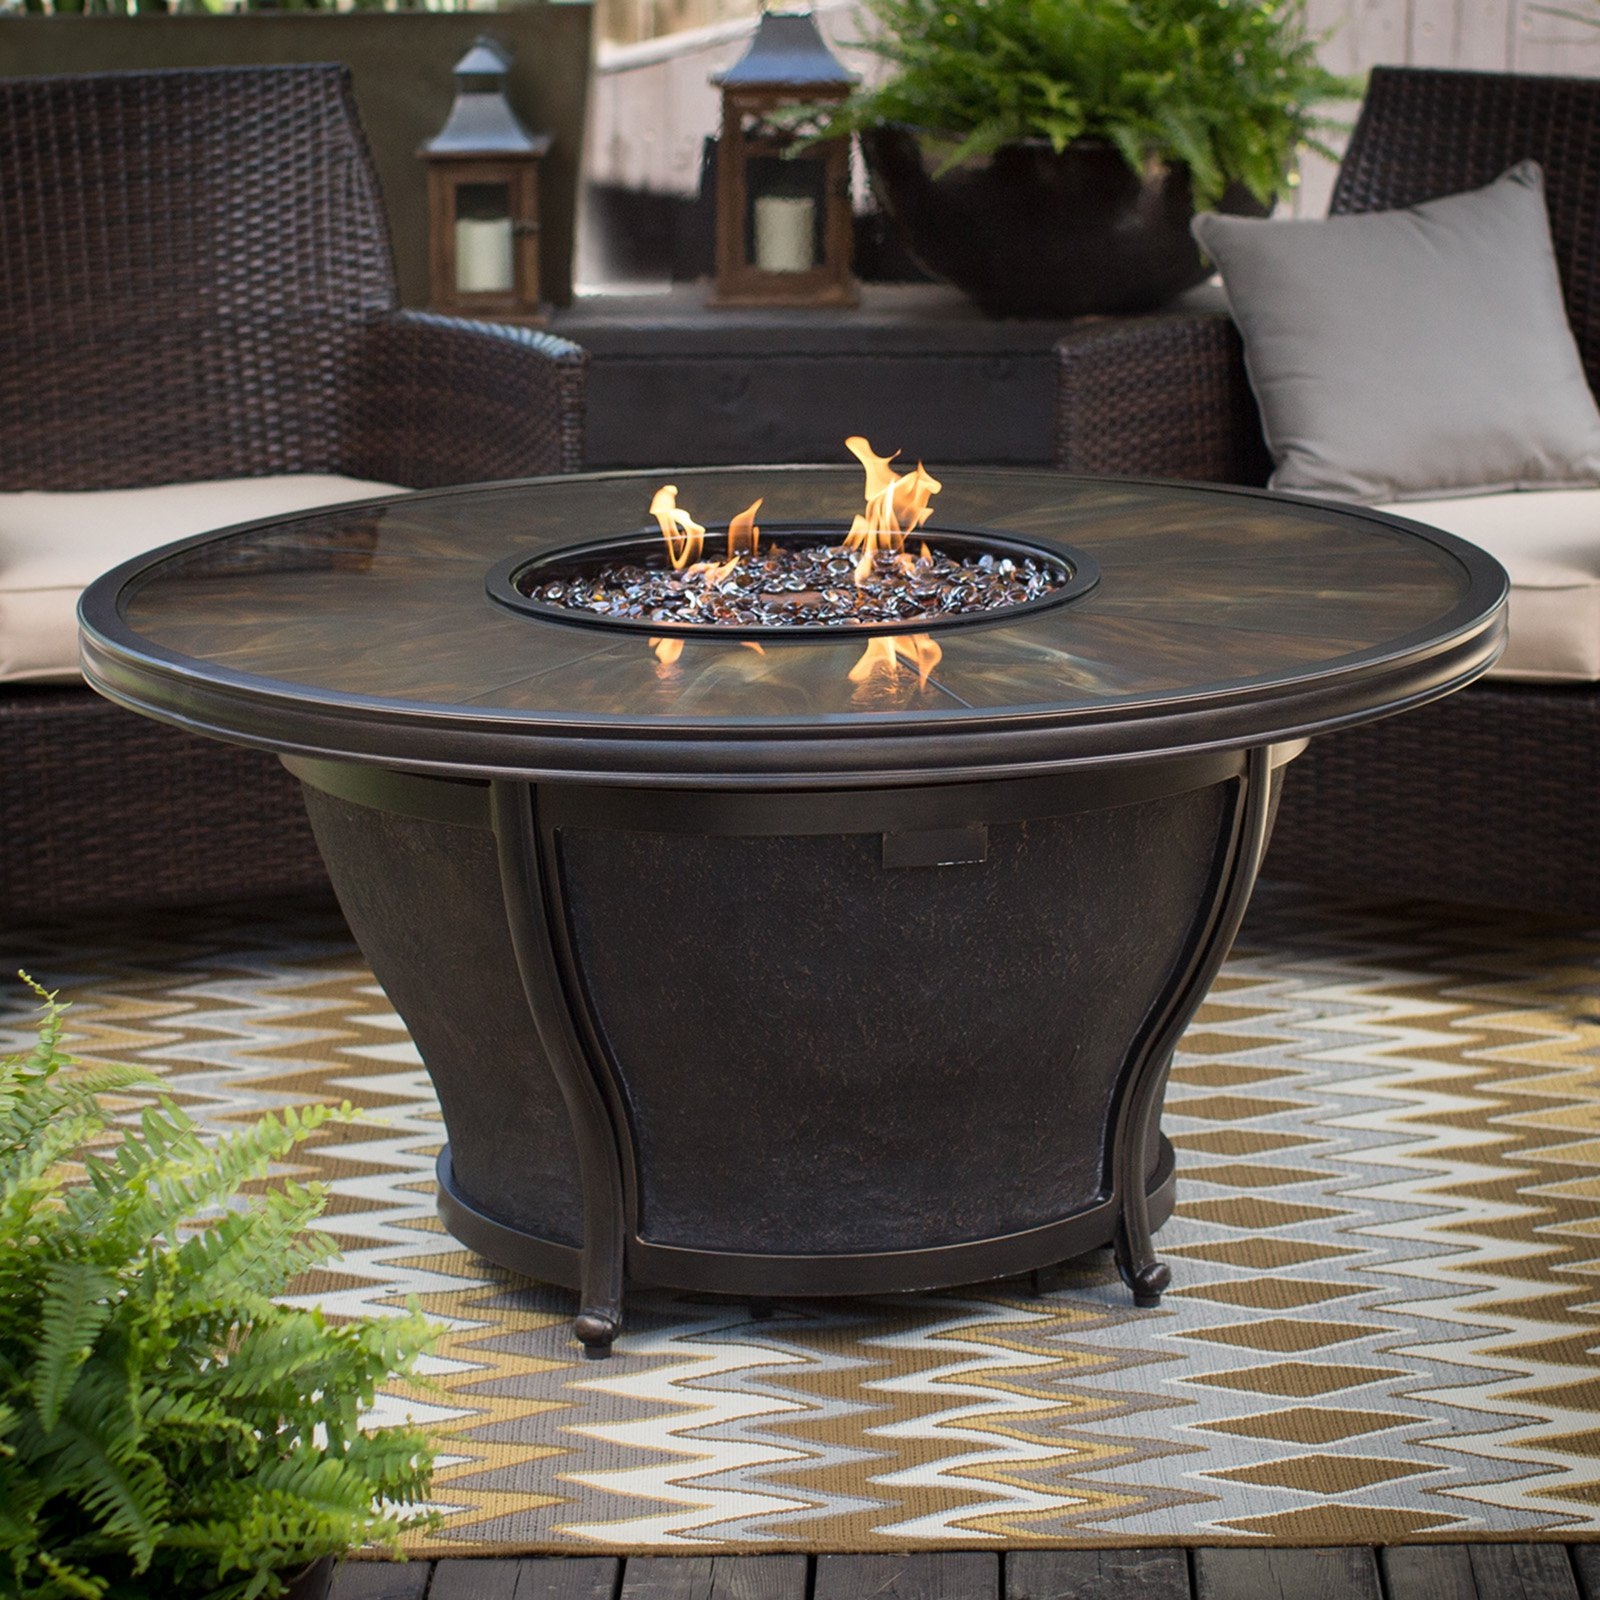 Agio Moonlight 48 In. Round Fire Pit Table With FREE Cover